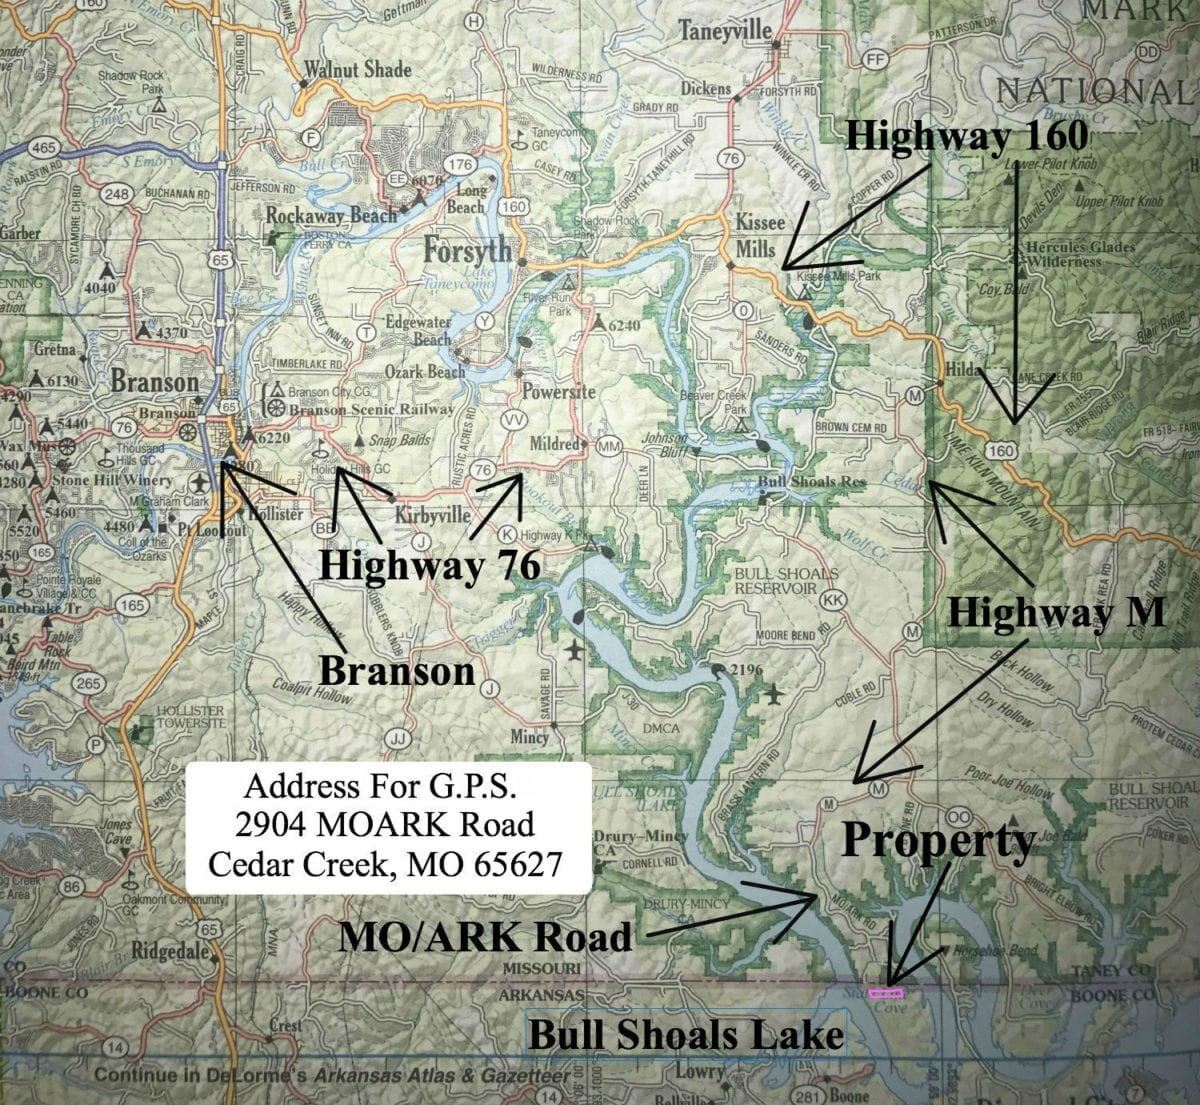 This helpful road map shows the route to the property from Branson, Missouri. Enter the address on this map into your G.P.S. and it should take you to the end of the paved road (Moark Road).